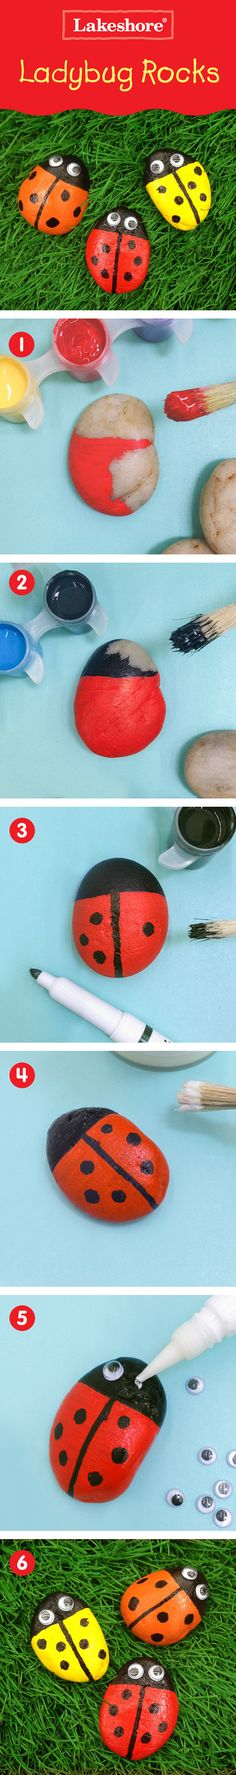 Kids create these little ladybug critters that make any space a happy place! (Also a great lady bug birthday party craft activity or decoration idea! Rock Crafts, Fun Crafts, Crafts For Kids, Arts And Crafts, Children Crafts, Ladybug Rocks, Ladybugs, Stone Painting, Rock Painting